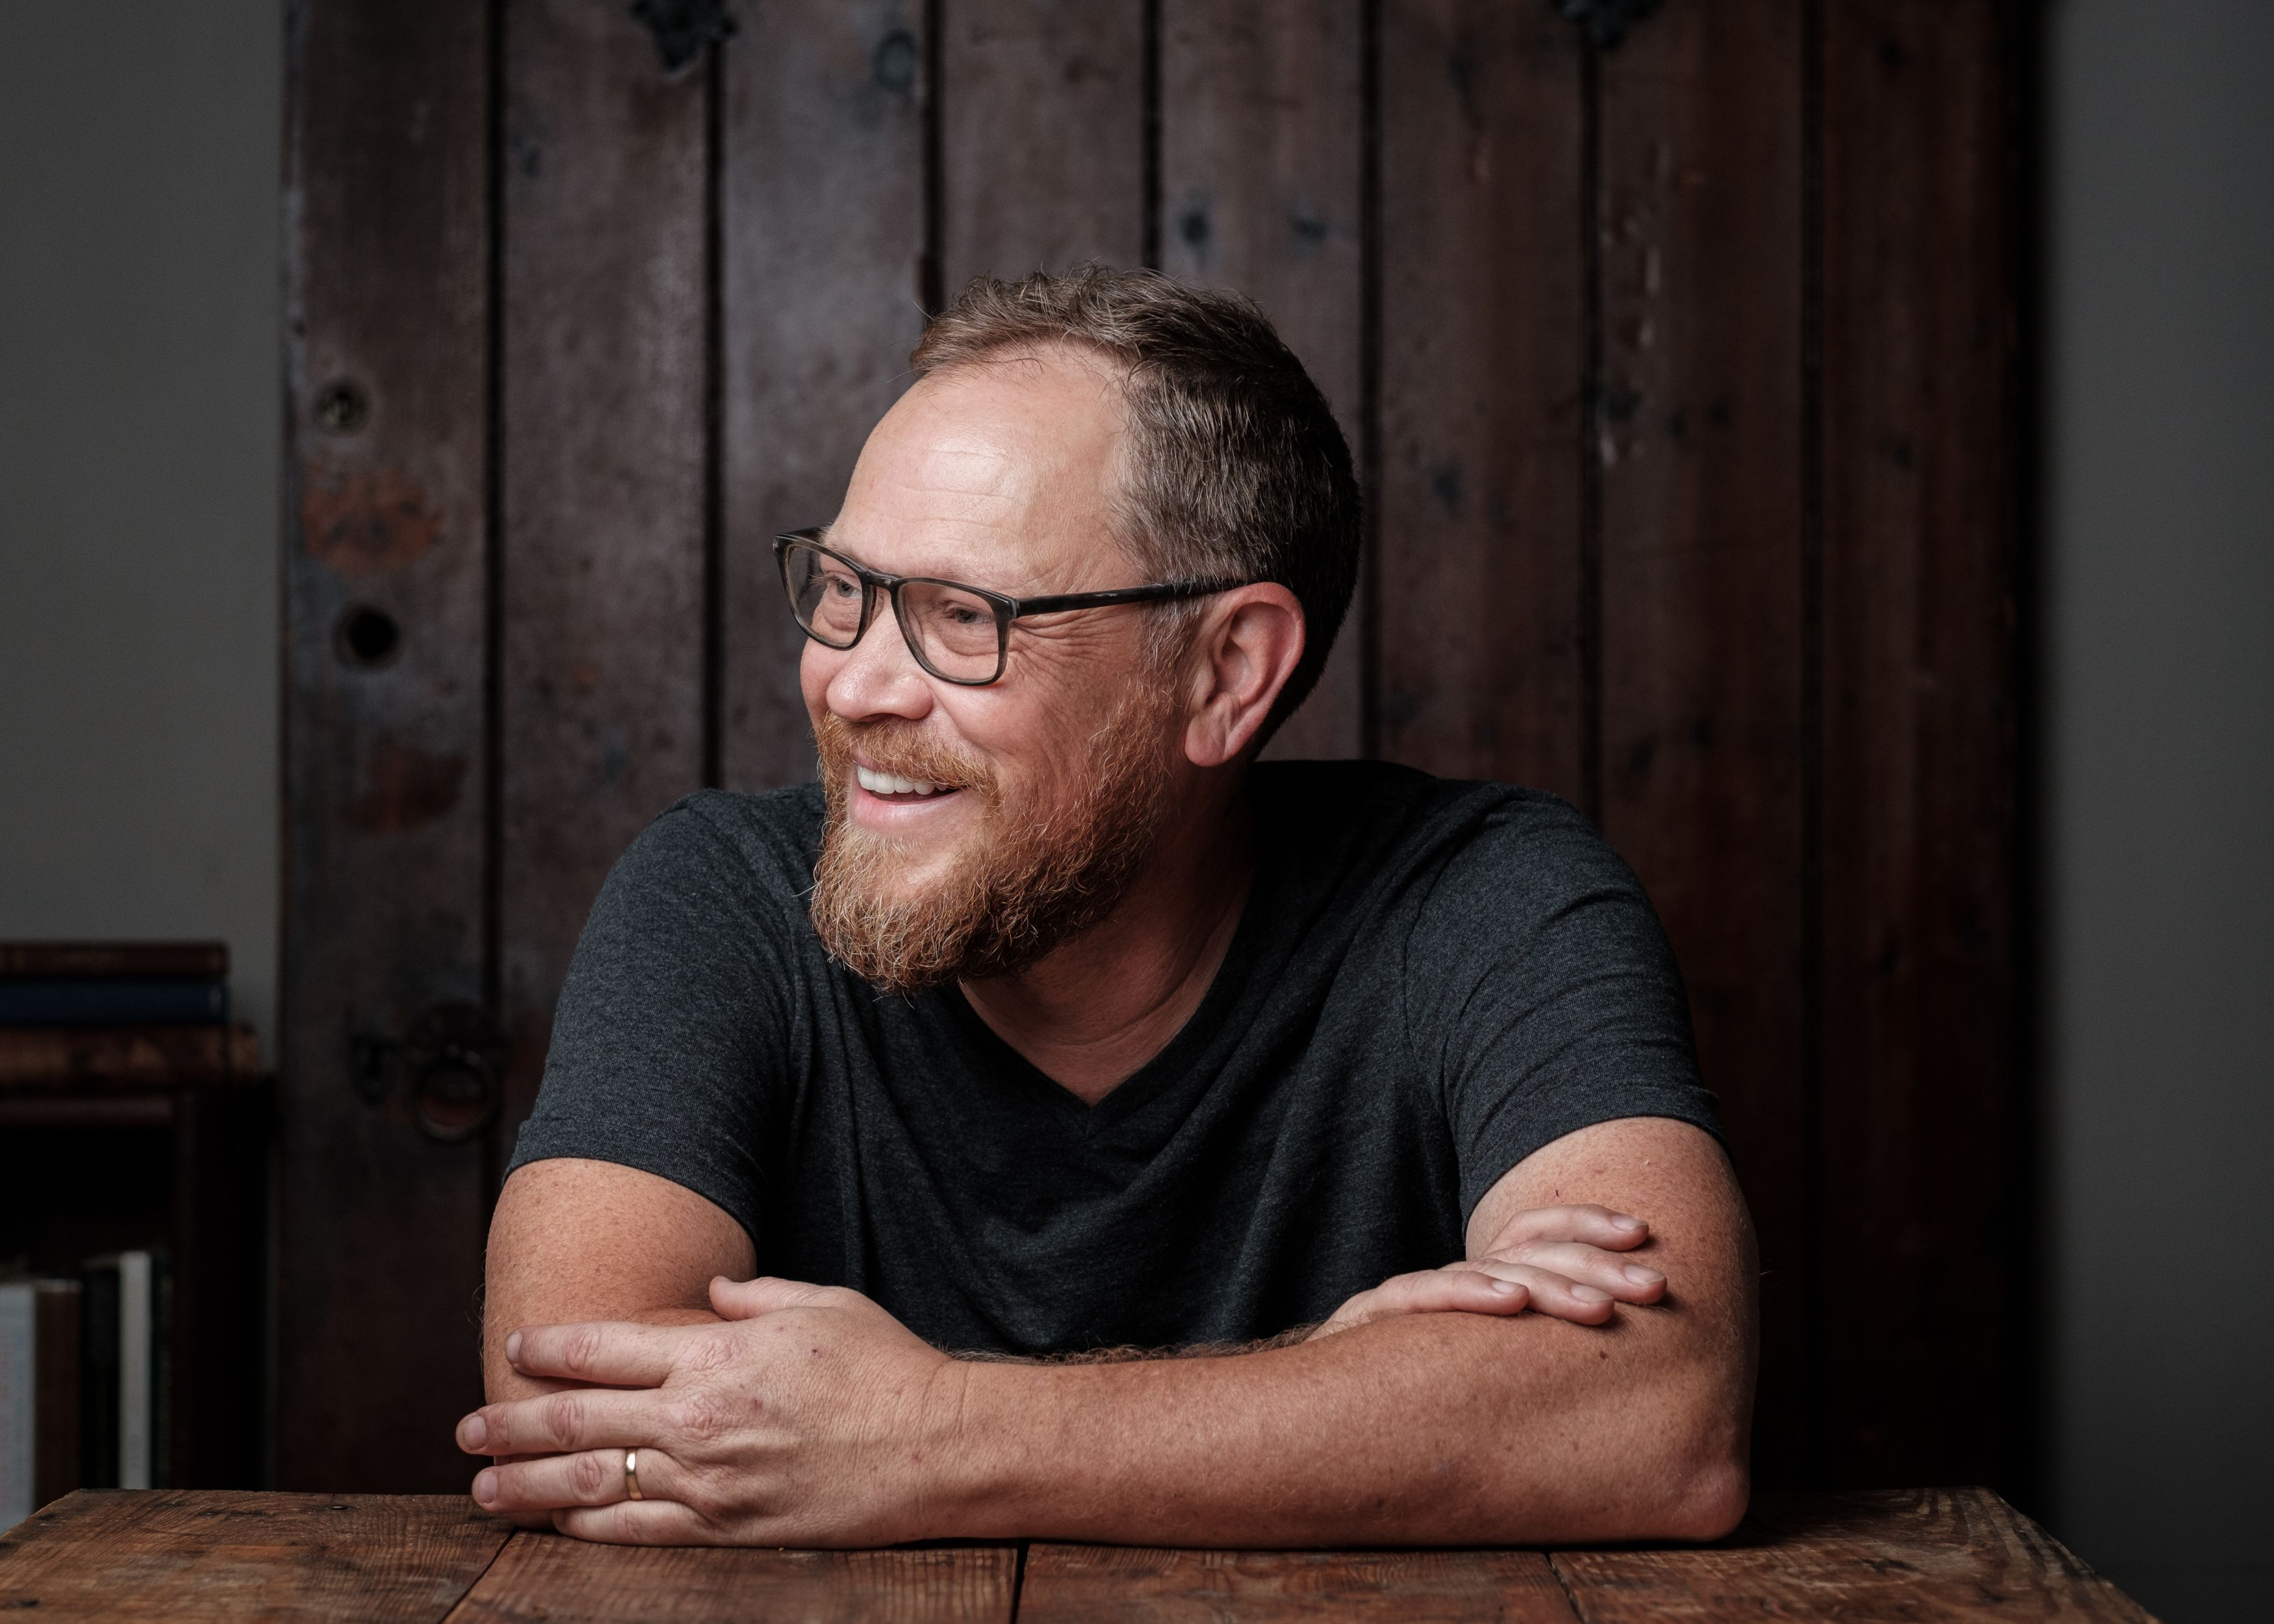 Andrew Peterson will be delivering the keynote address as well as performing the closing concert.